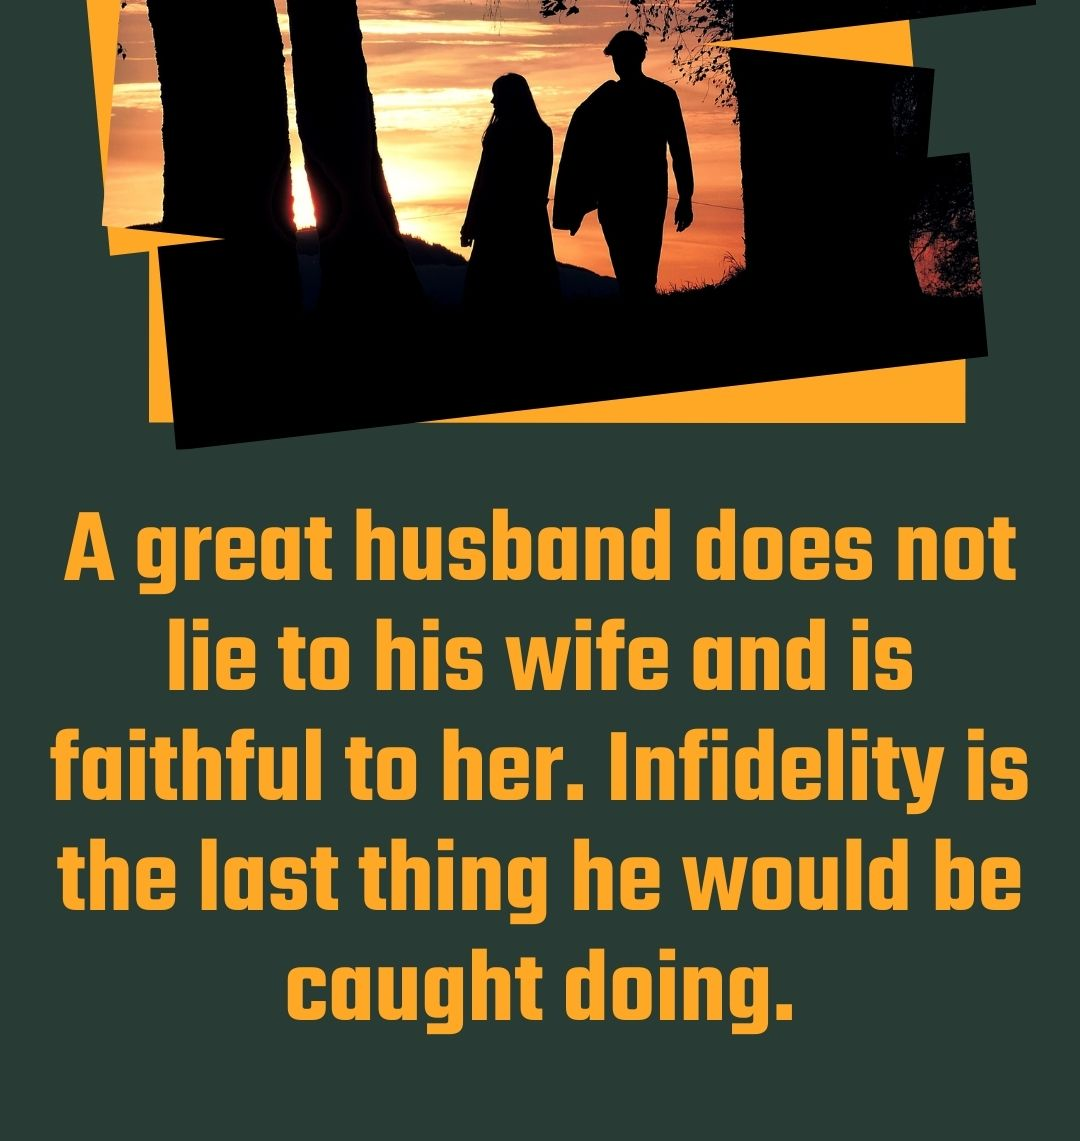 A great husband does not lie to his wife and is faithful to her. Infidelity is the last thing he would be caught doing.